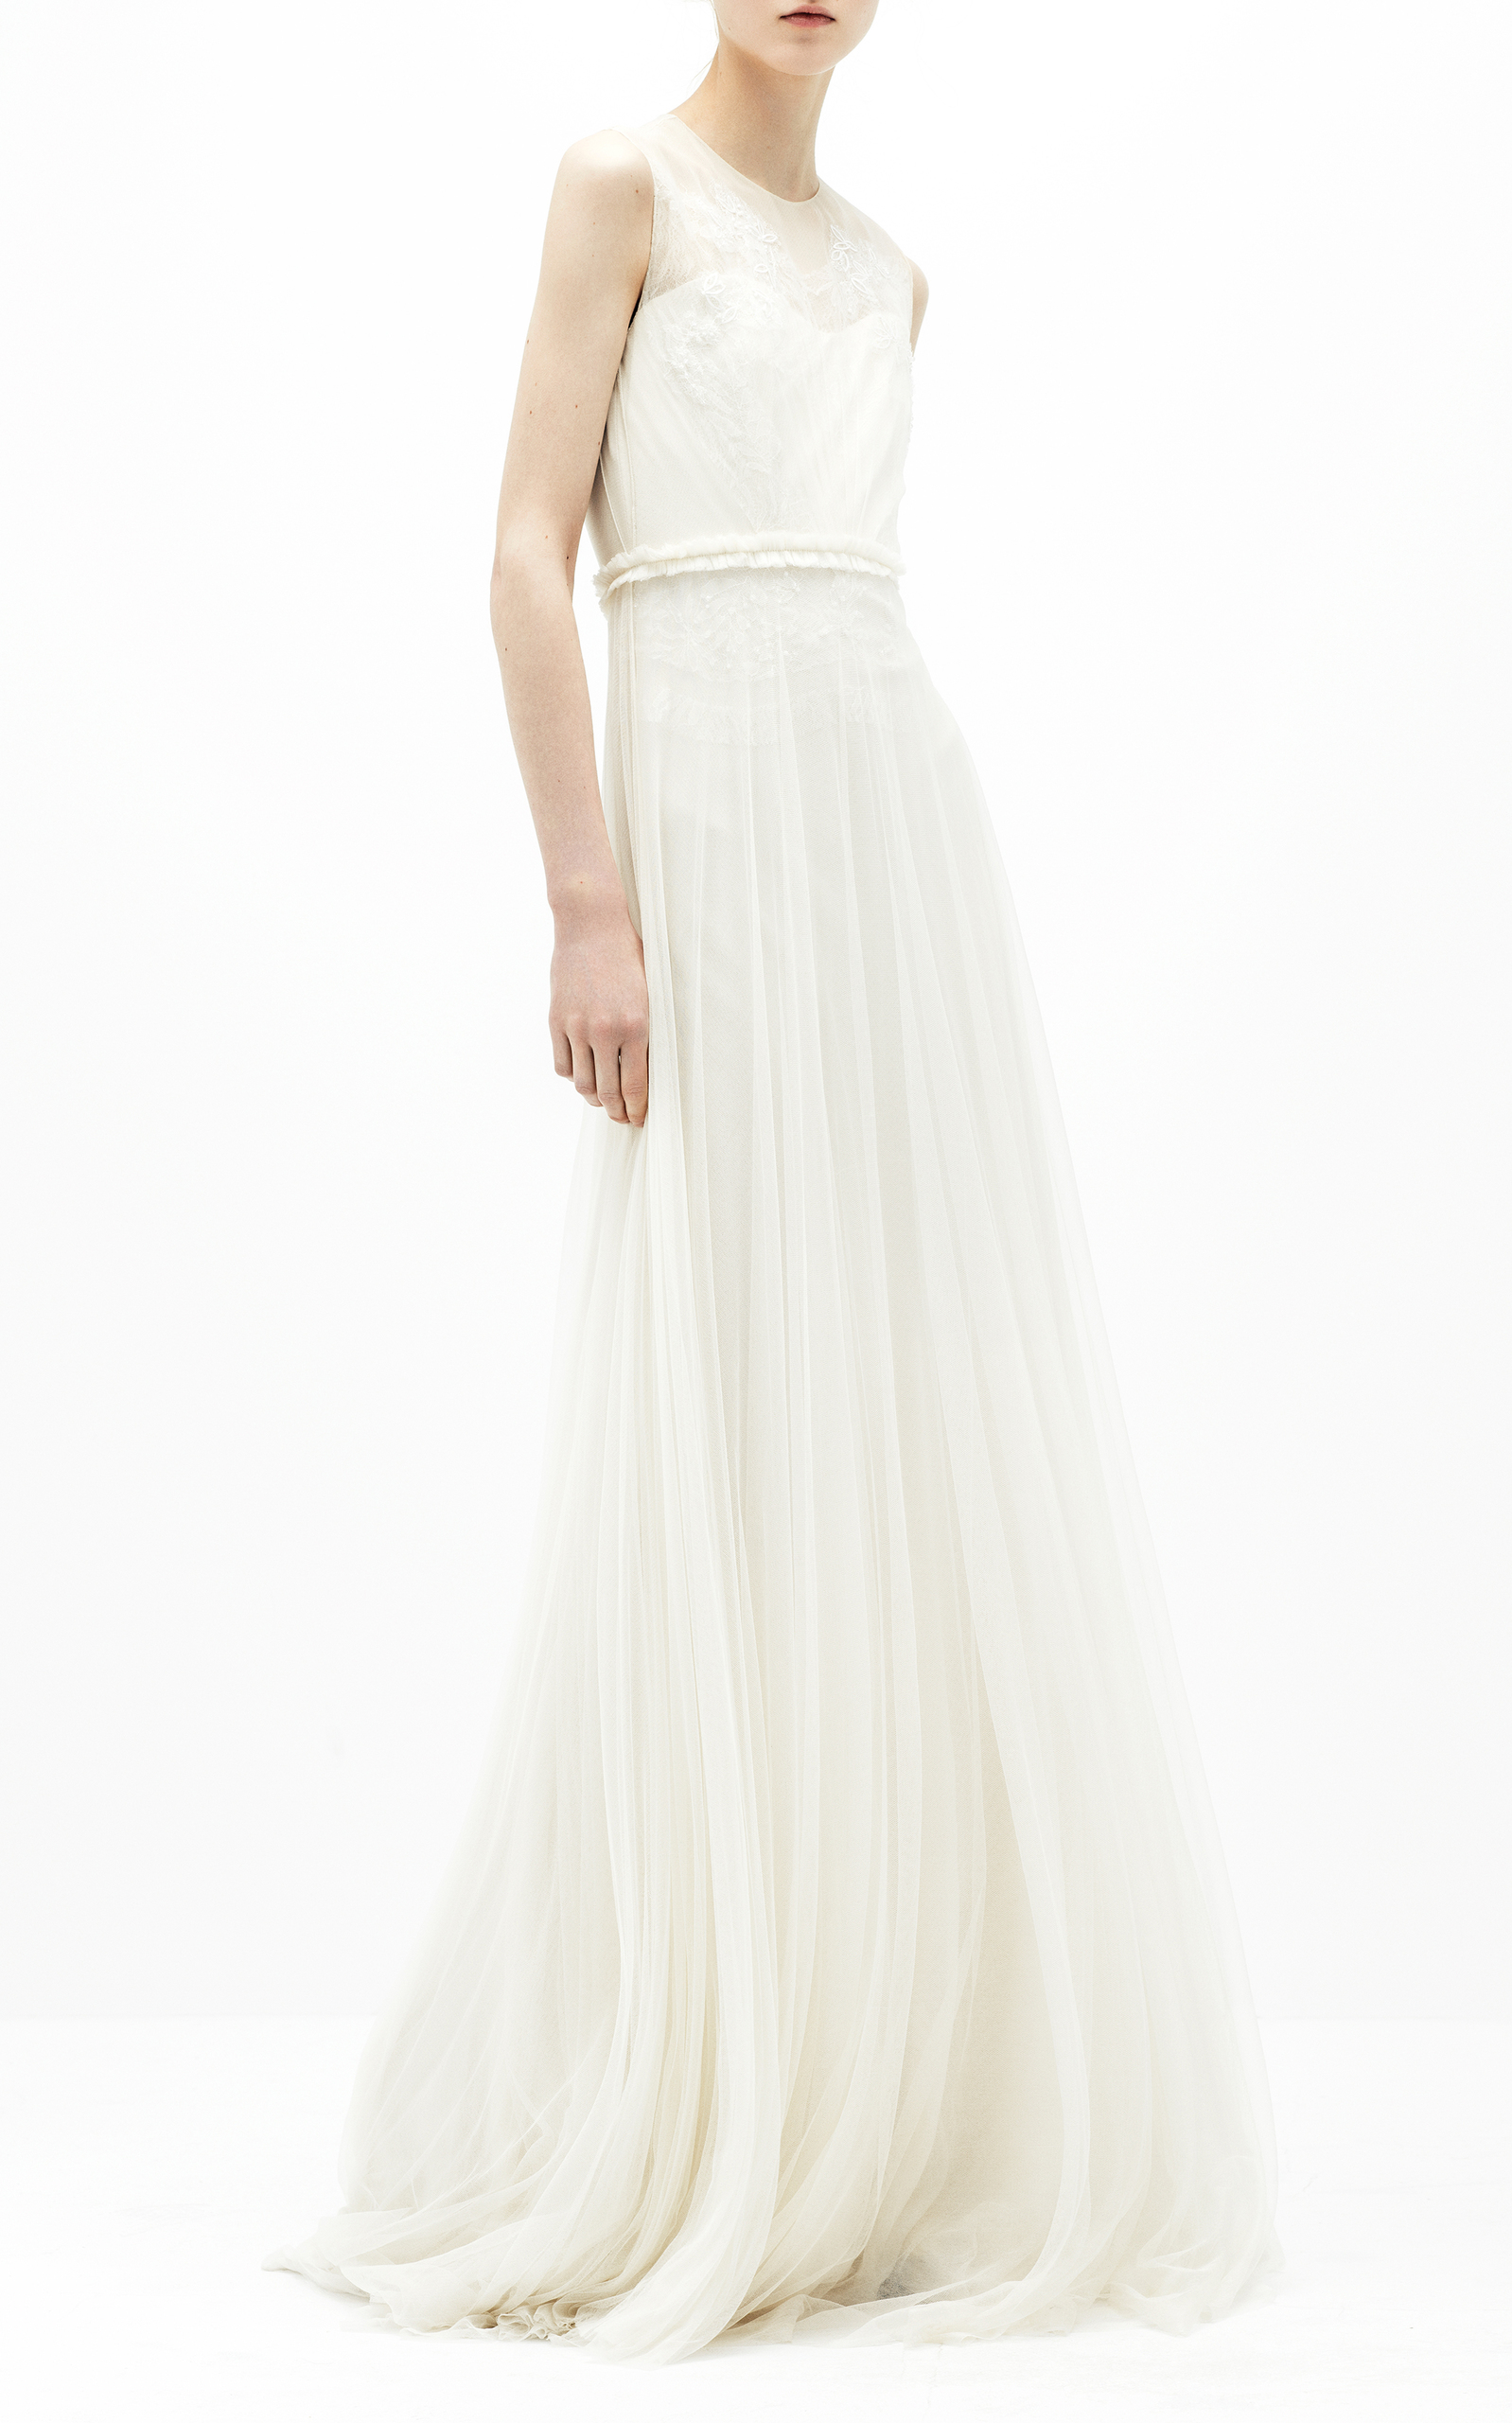 07a72140426 Sleeveless Tulle Gown by Delpozo Bridal